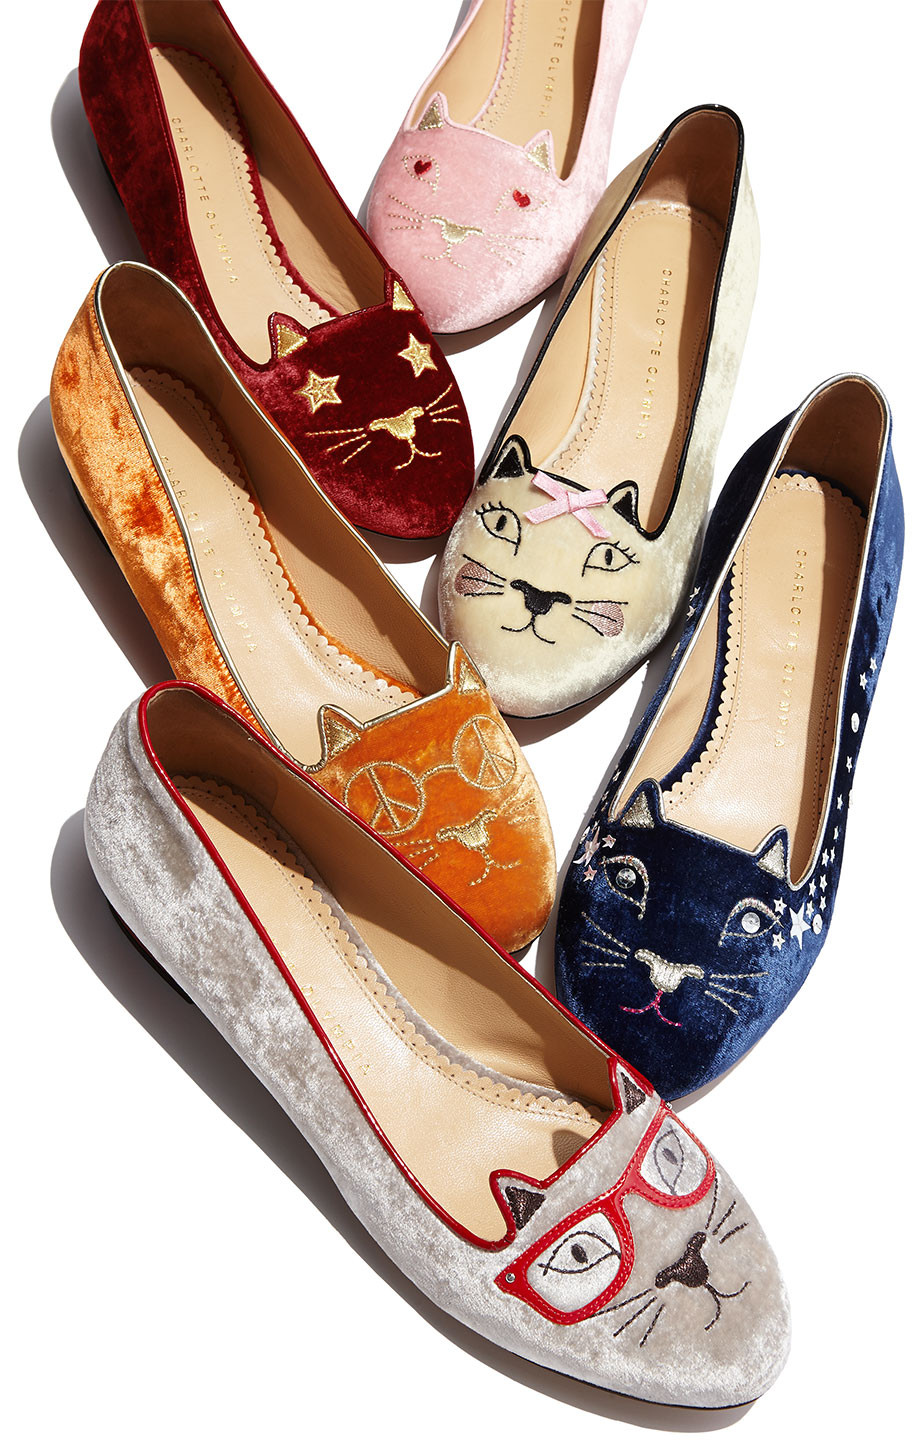 different styles of charlotte olympia cat kitty slipper shoes